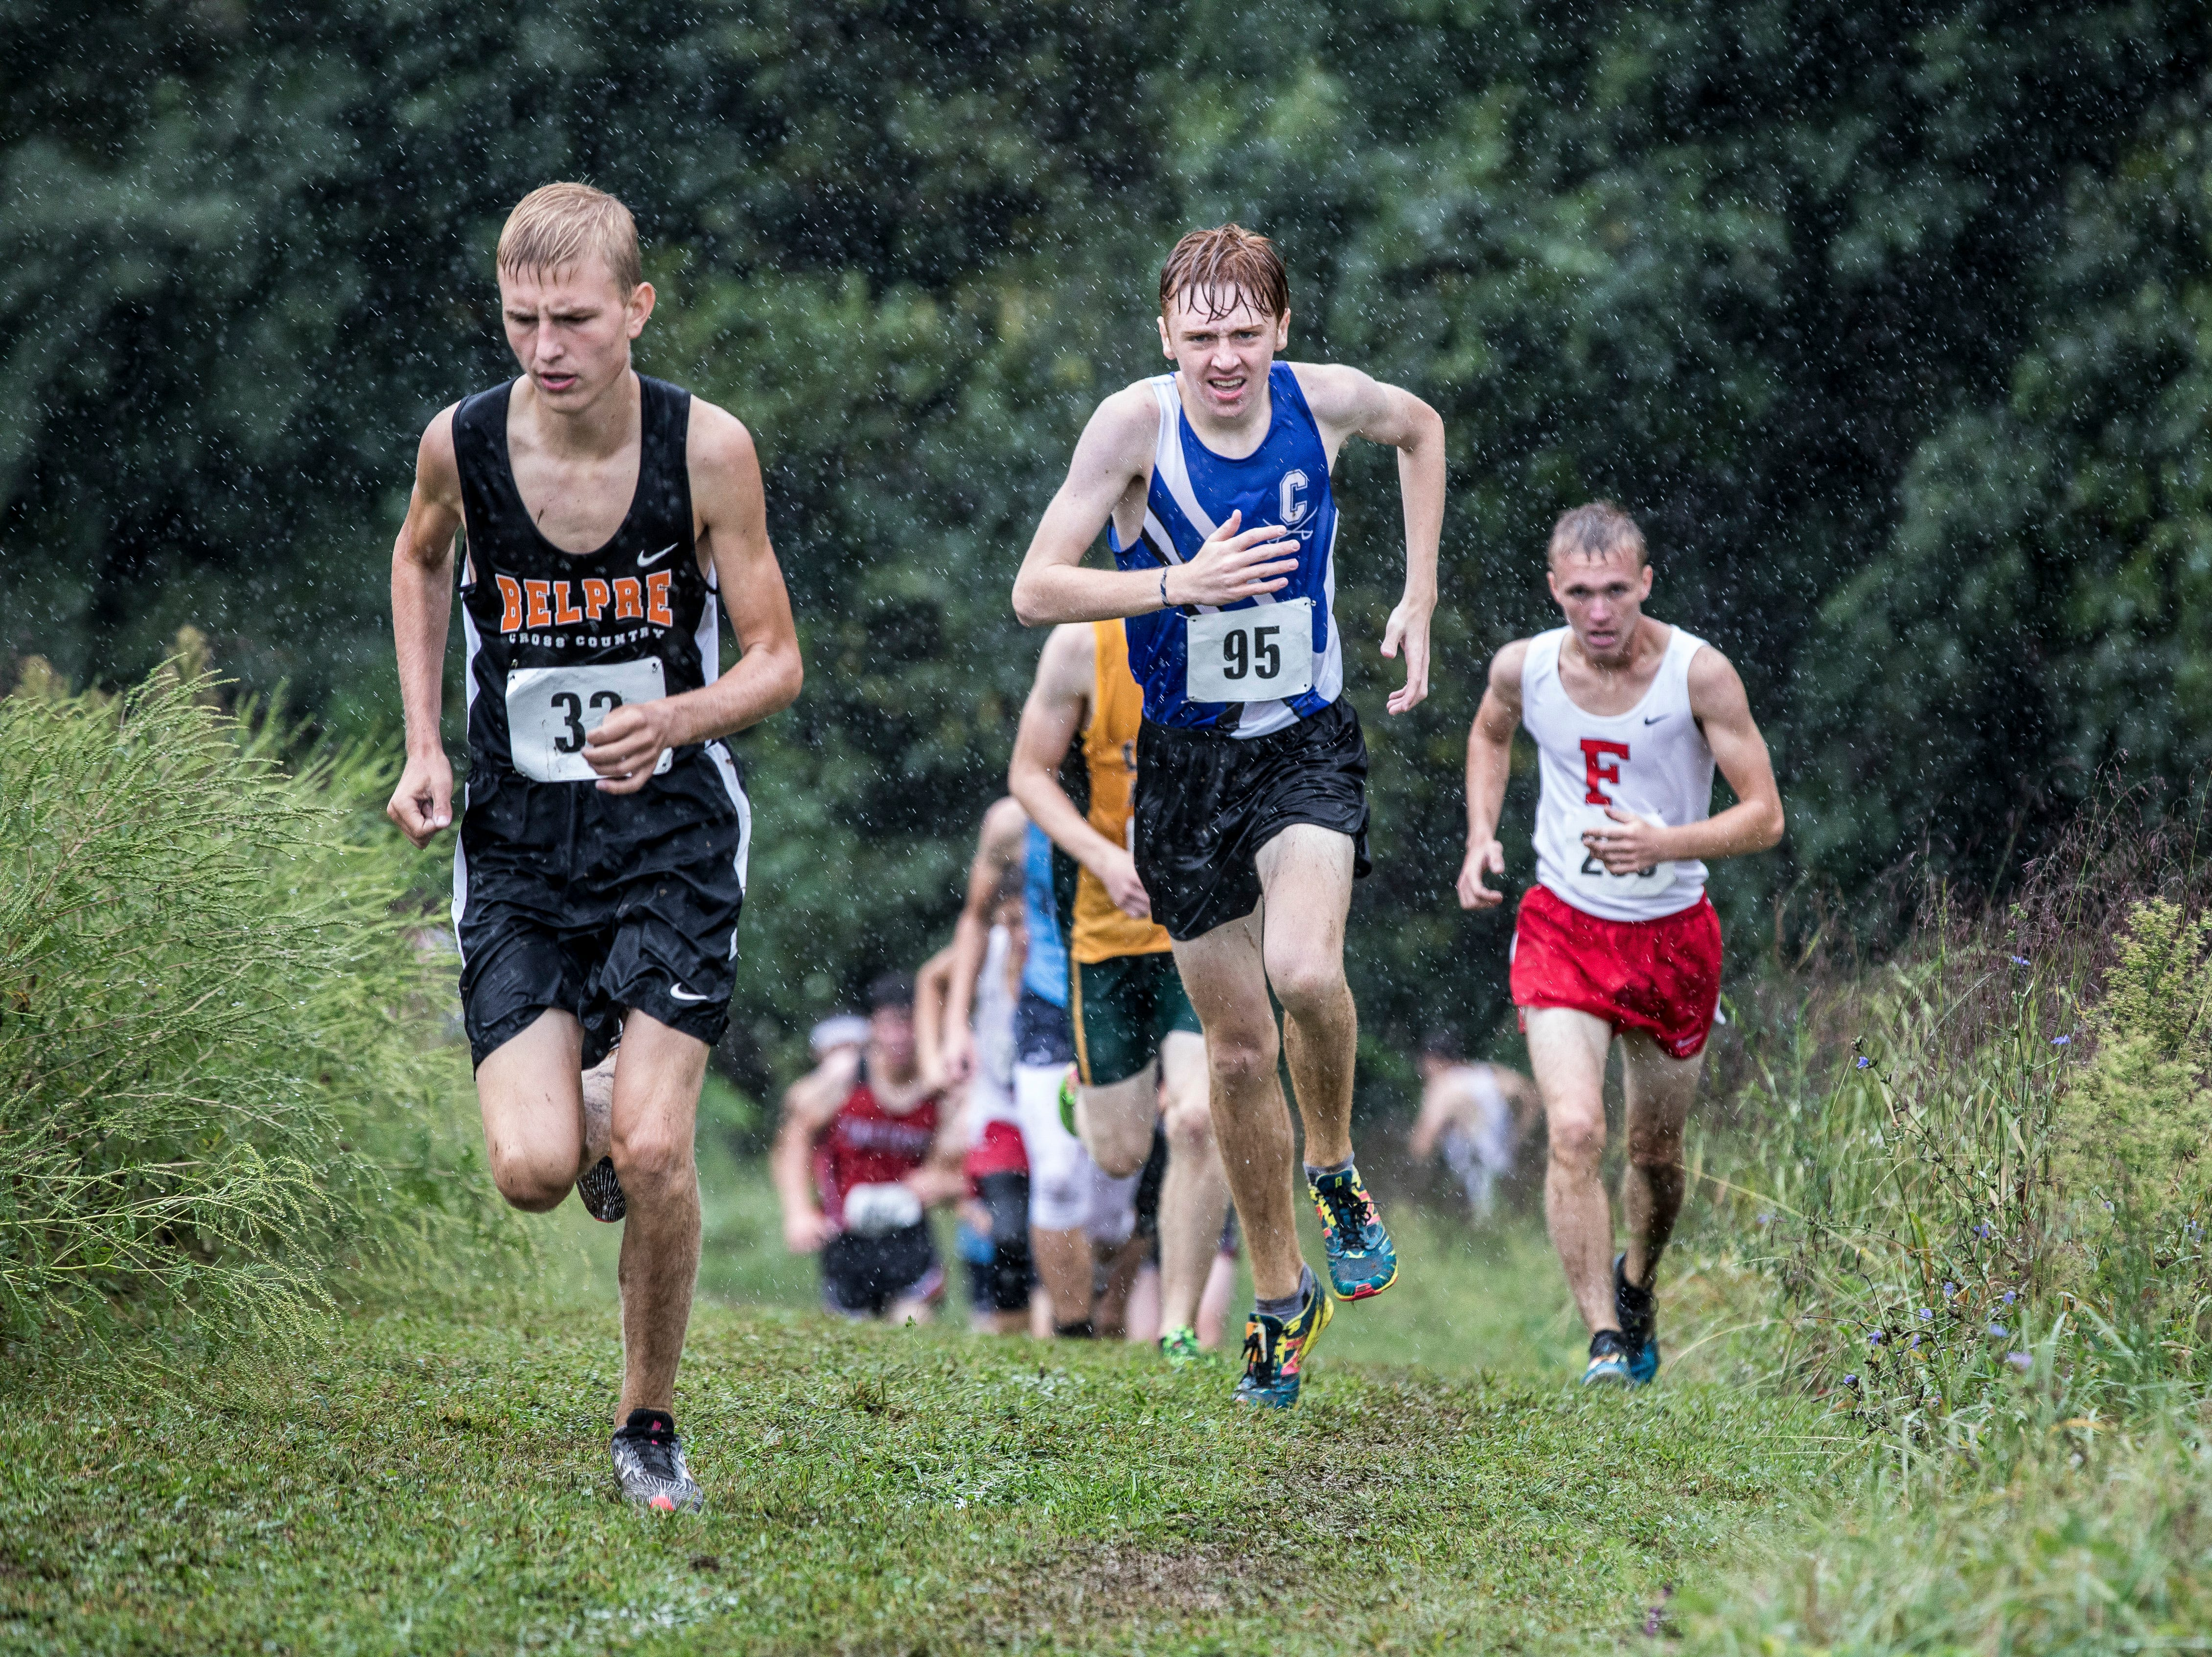 Chillicothe's Andrew McCallum, middle, took second place in the boys race during Zane Trace's annual cross-country invitational with a time of 18:02.63.